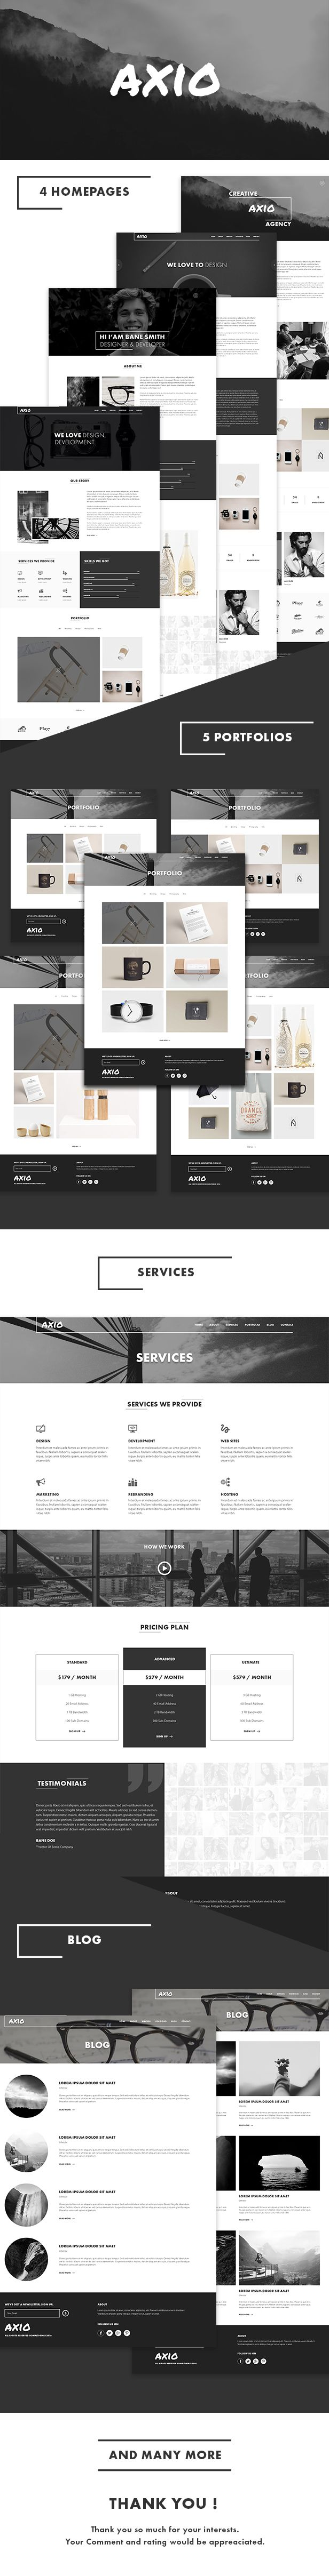 AXIO Creative Agency and Portfolio Template • Download theme